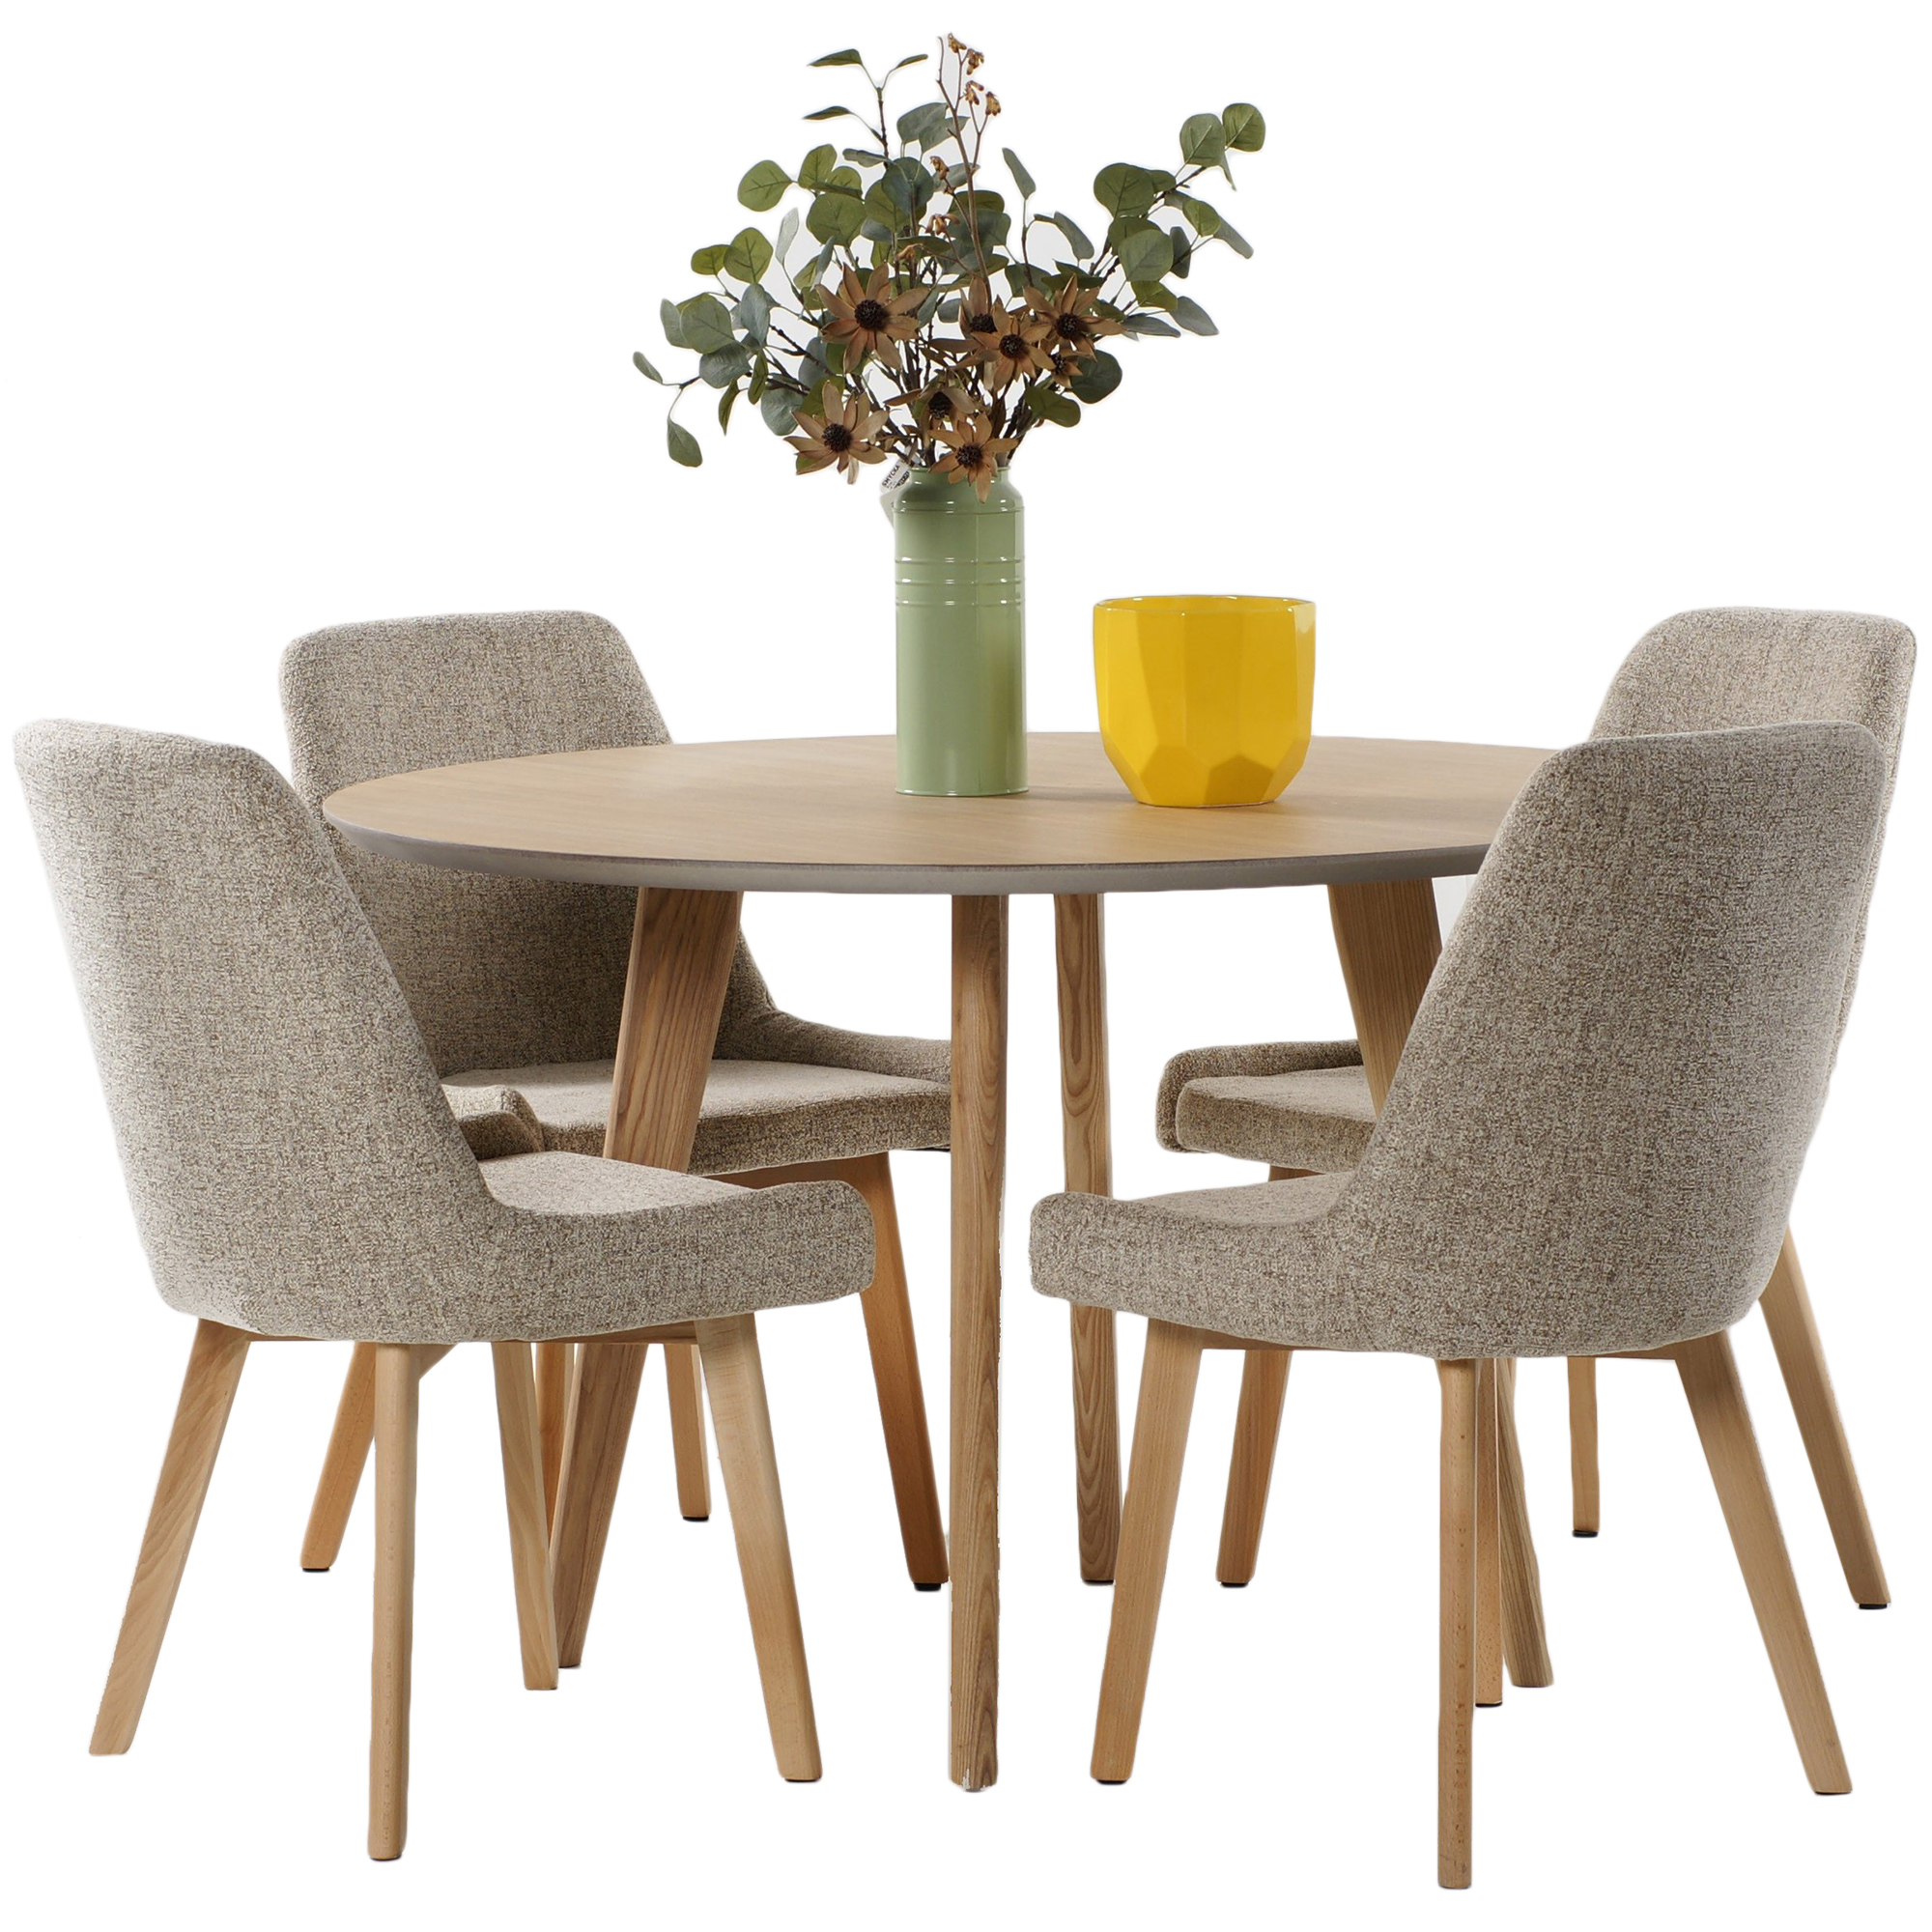 Sku deso1116 4 seater alexandria dining table chair set is also sometimes listed under the following manufacturer numbers alex5pc oak